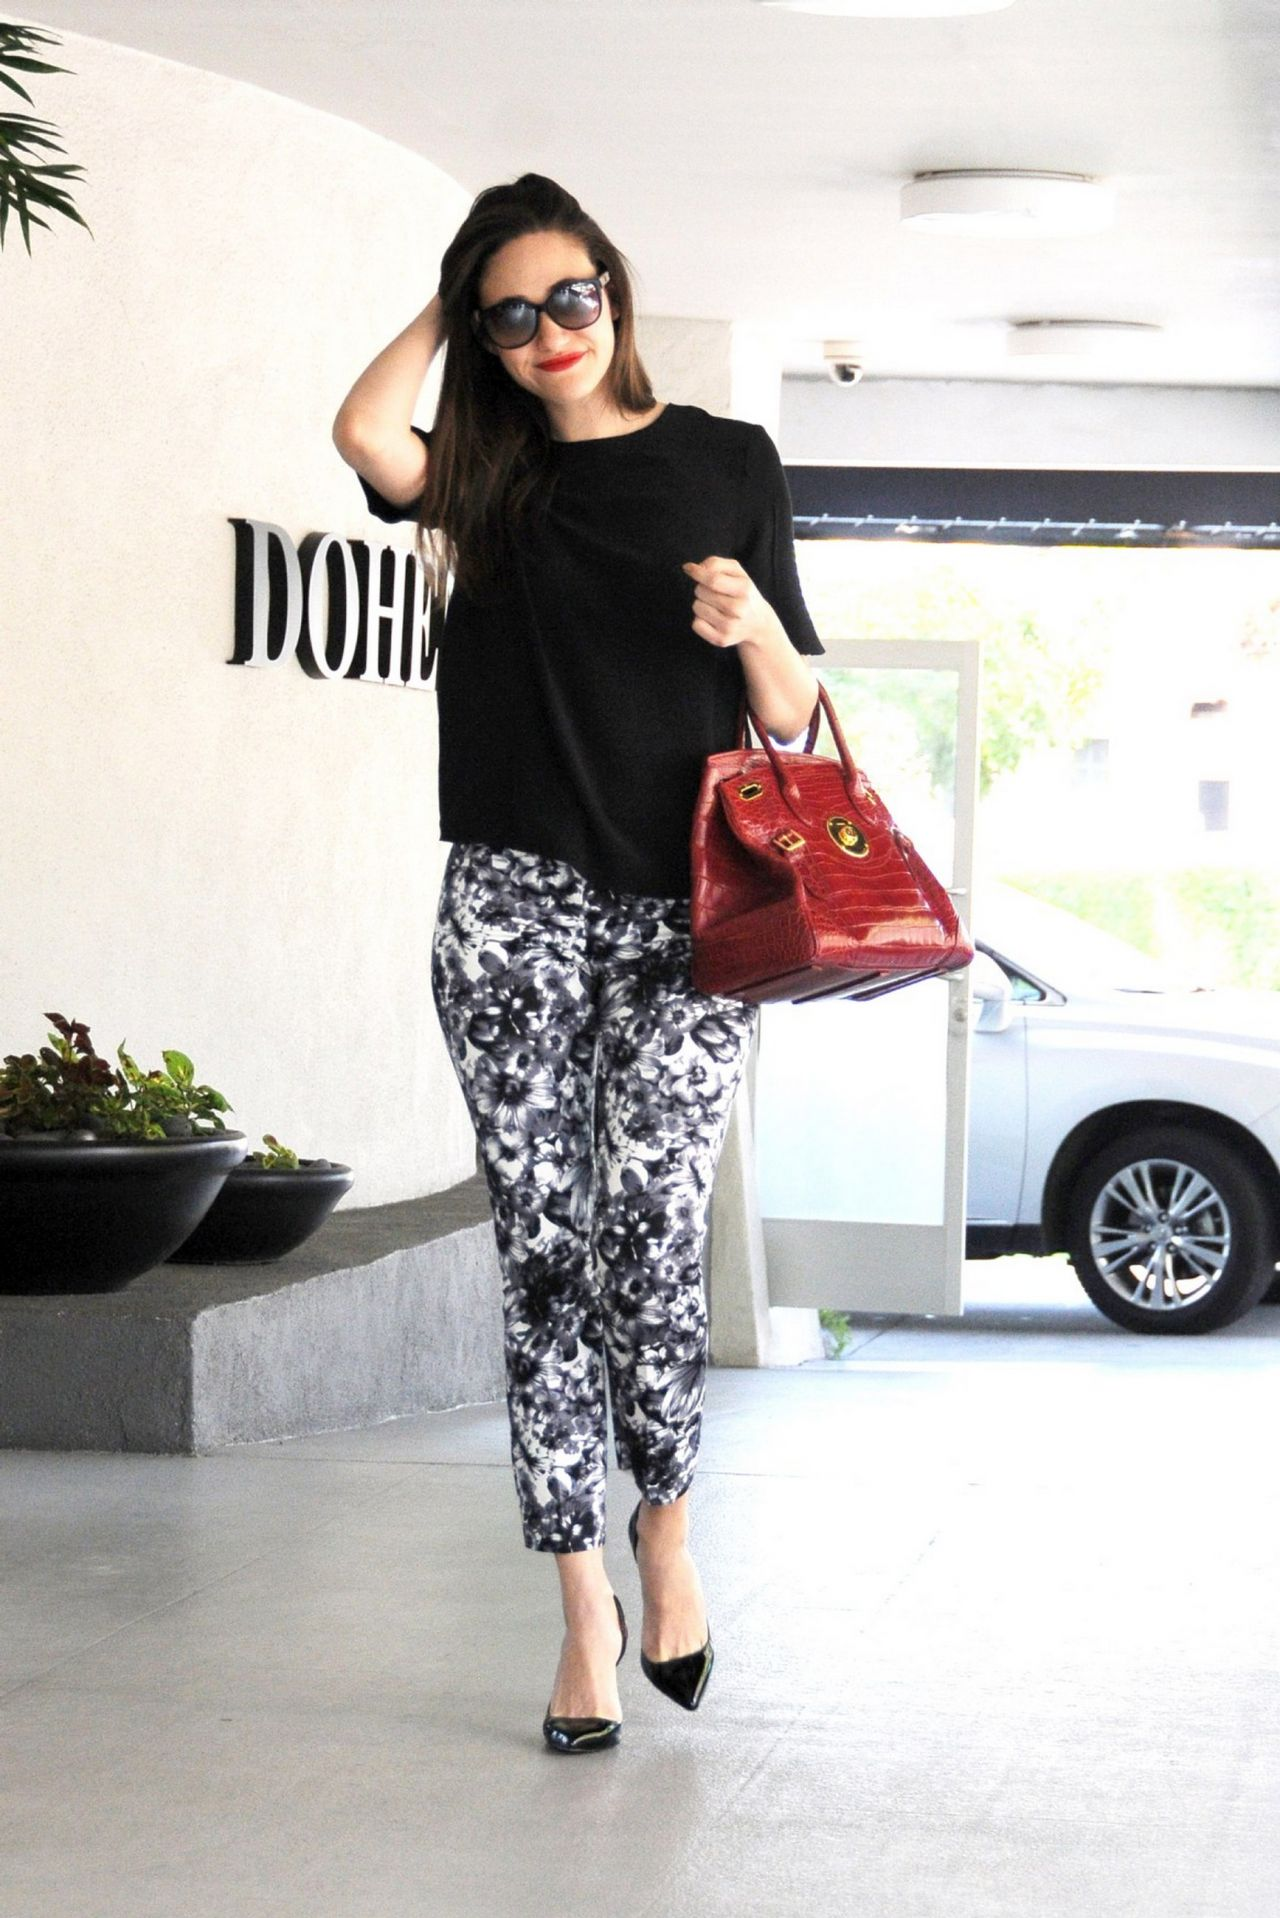 Emmy Rossum Arriving at Doheny Plaza in West Hollywood - June 2014